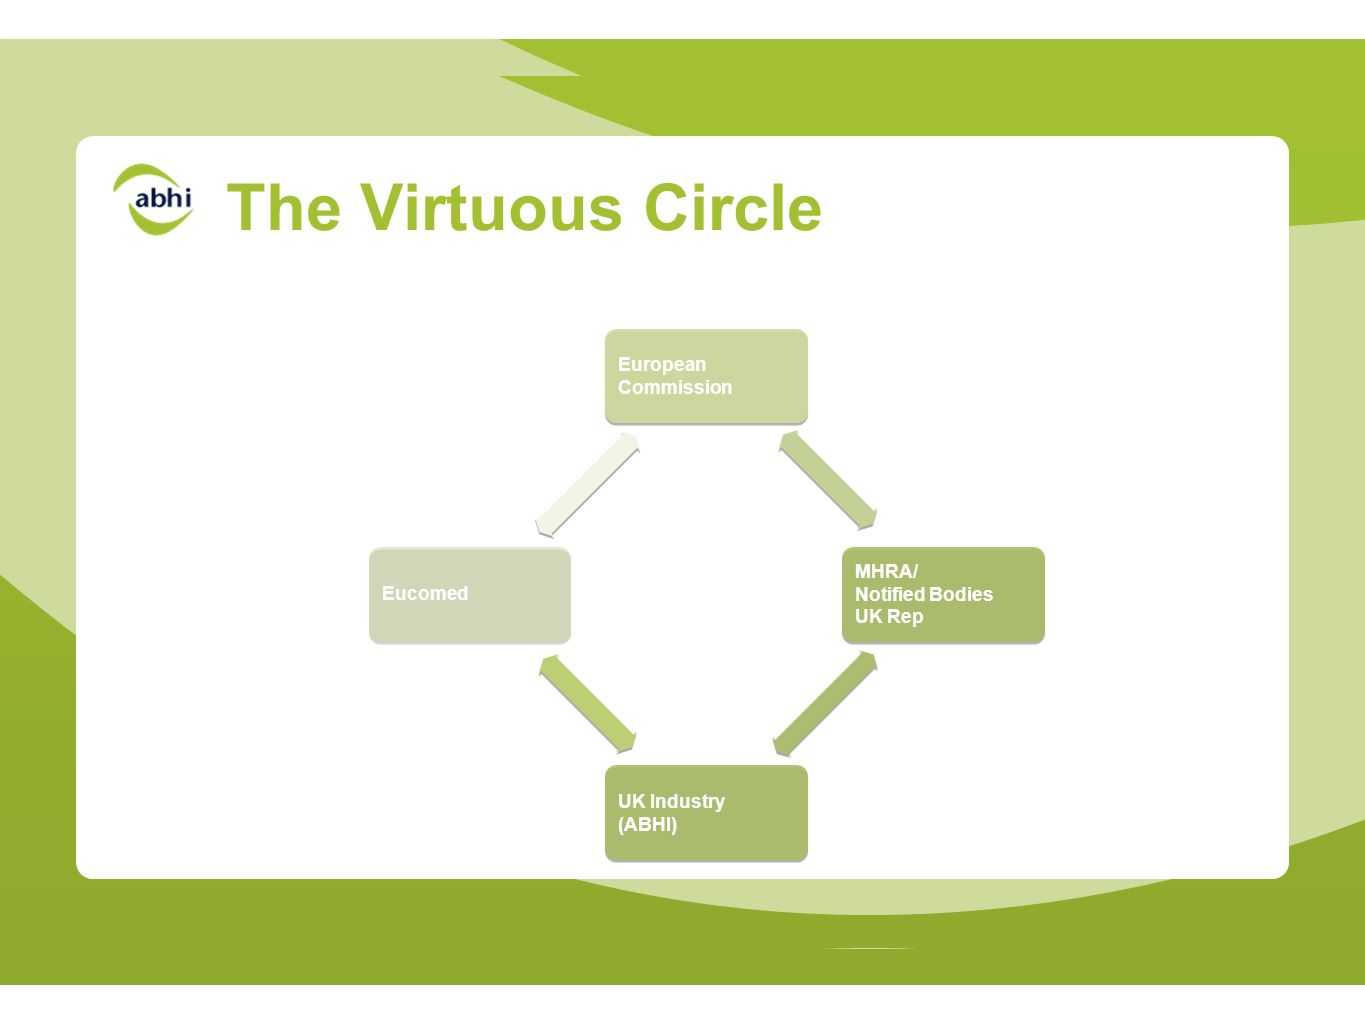 European Commission MHRA/ Notified Bodies UK Rep UK Industry (ABHI) Eucomed The Virtuous Circle